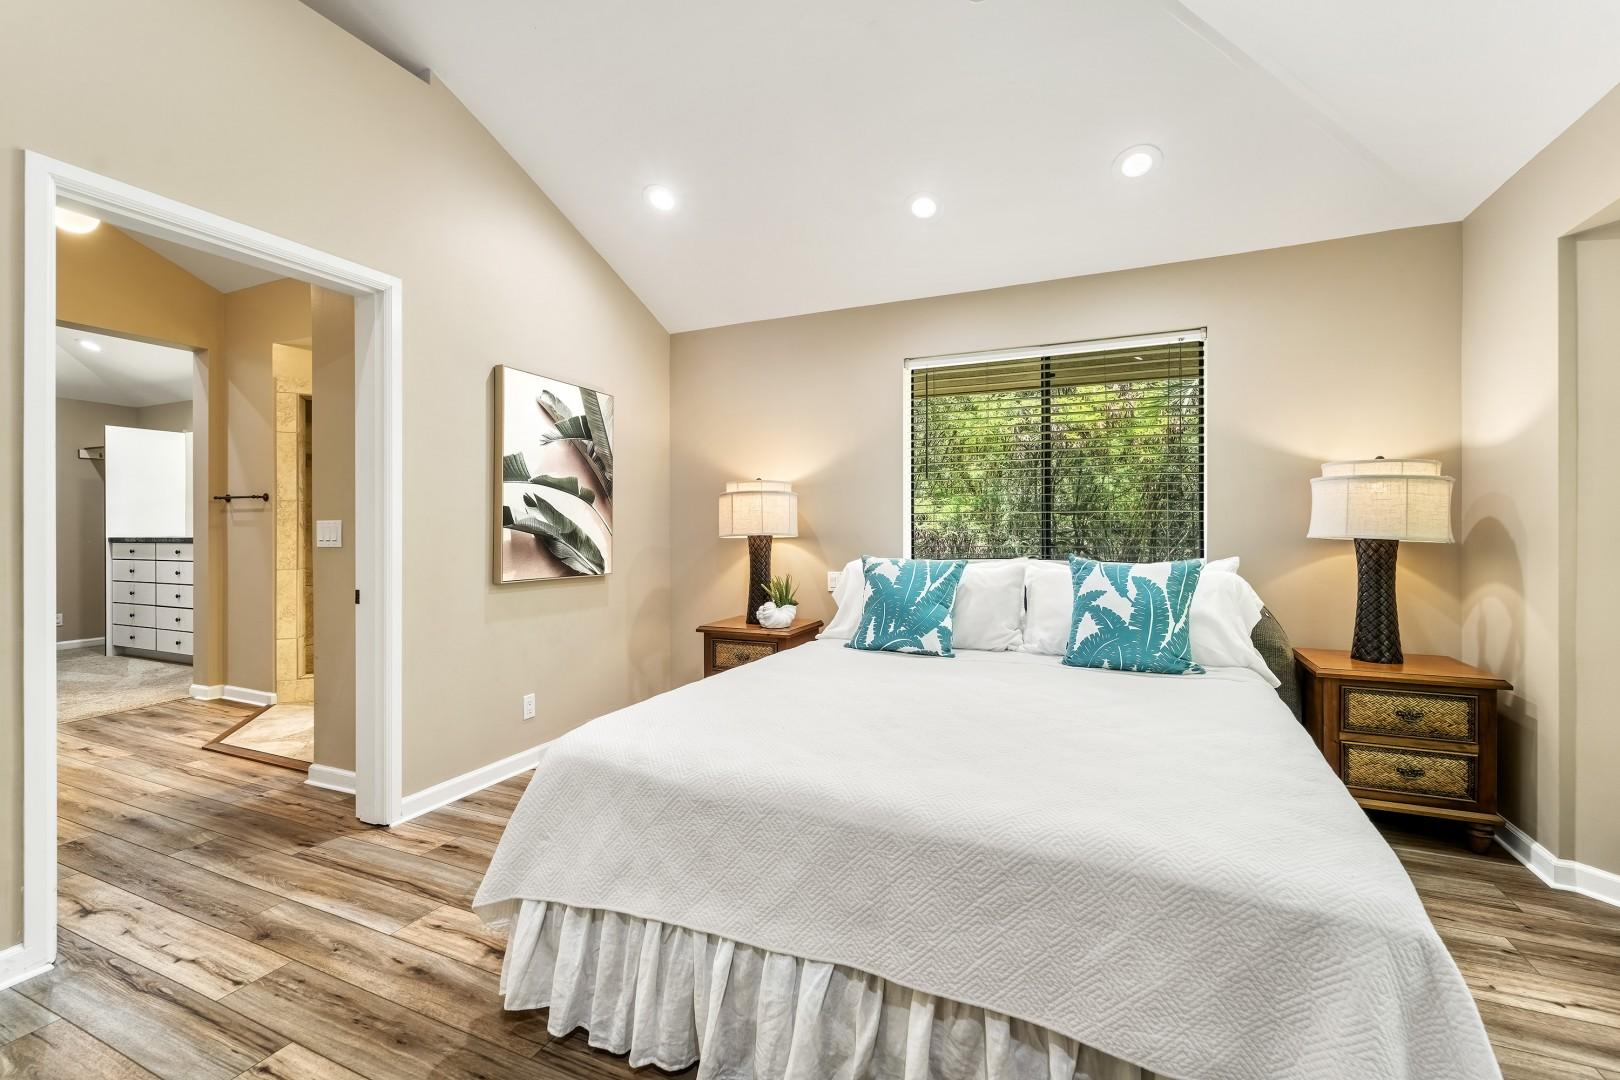 Large bedroom with views of the mature landscape is the perfect place to lay your head